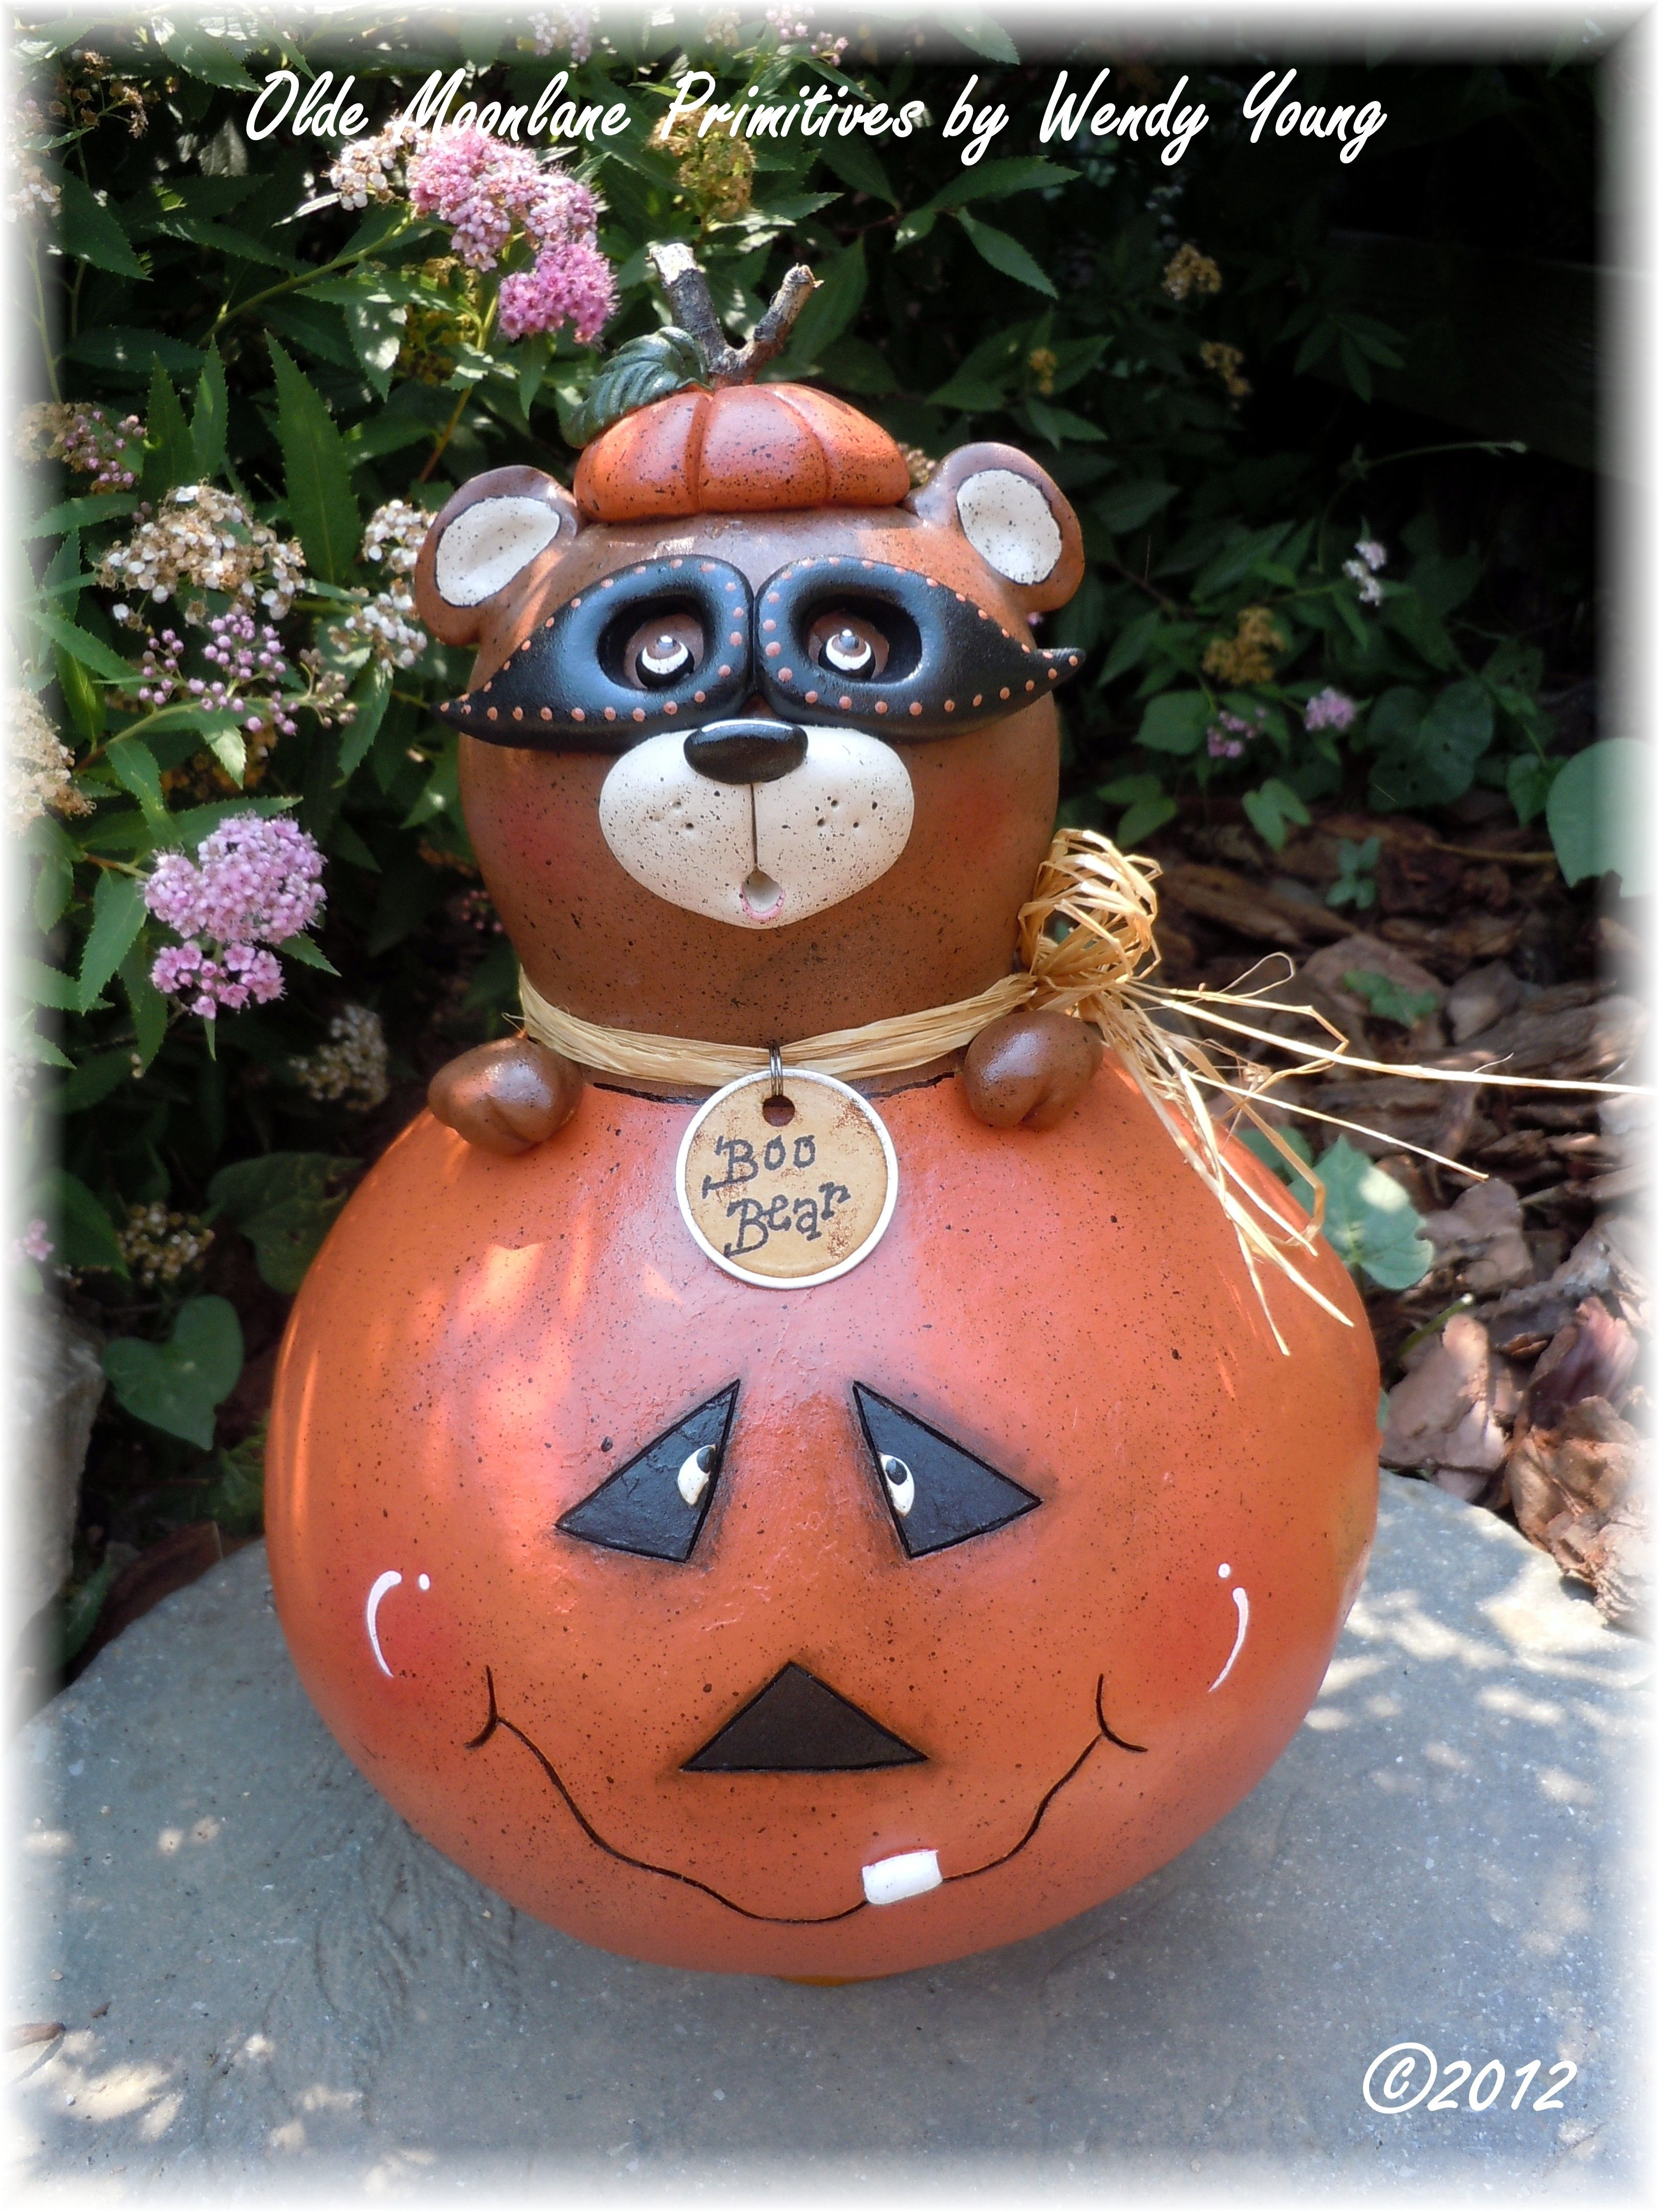 Pin By Patricia Hutzell On Gourds And More Classes I Teach Multi Mixed Media Painted Gourds Halloween Gourds Decorative Painting Projects